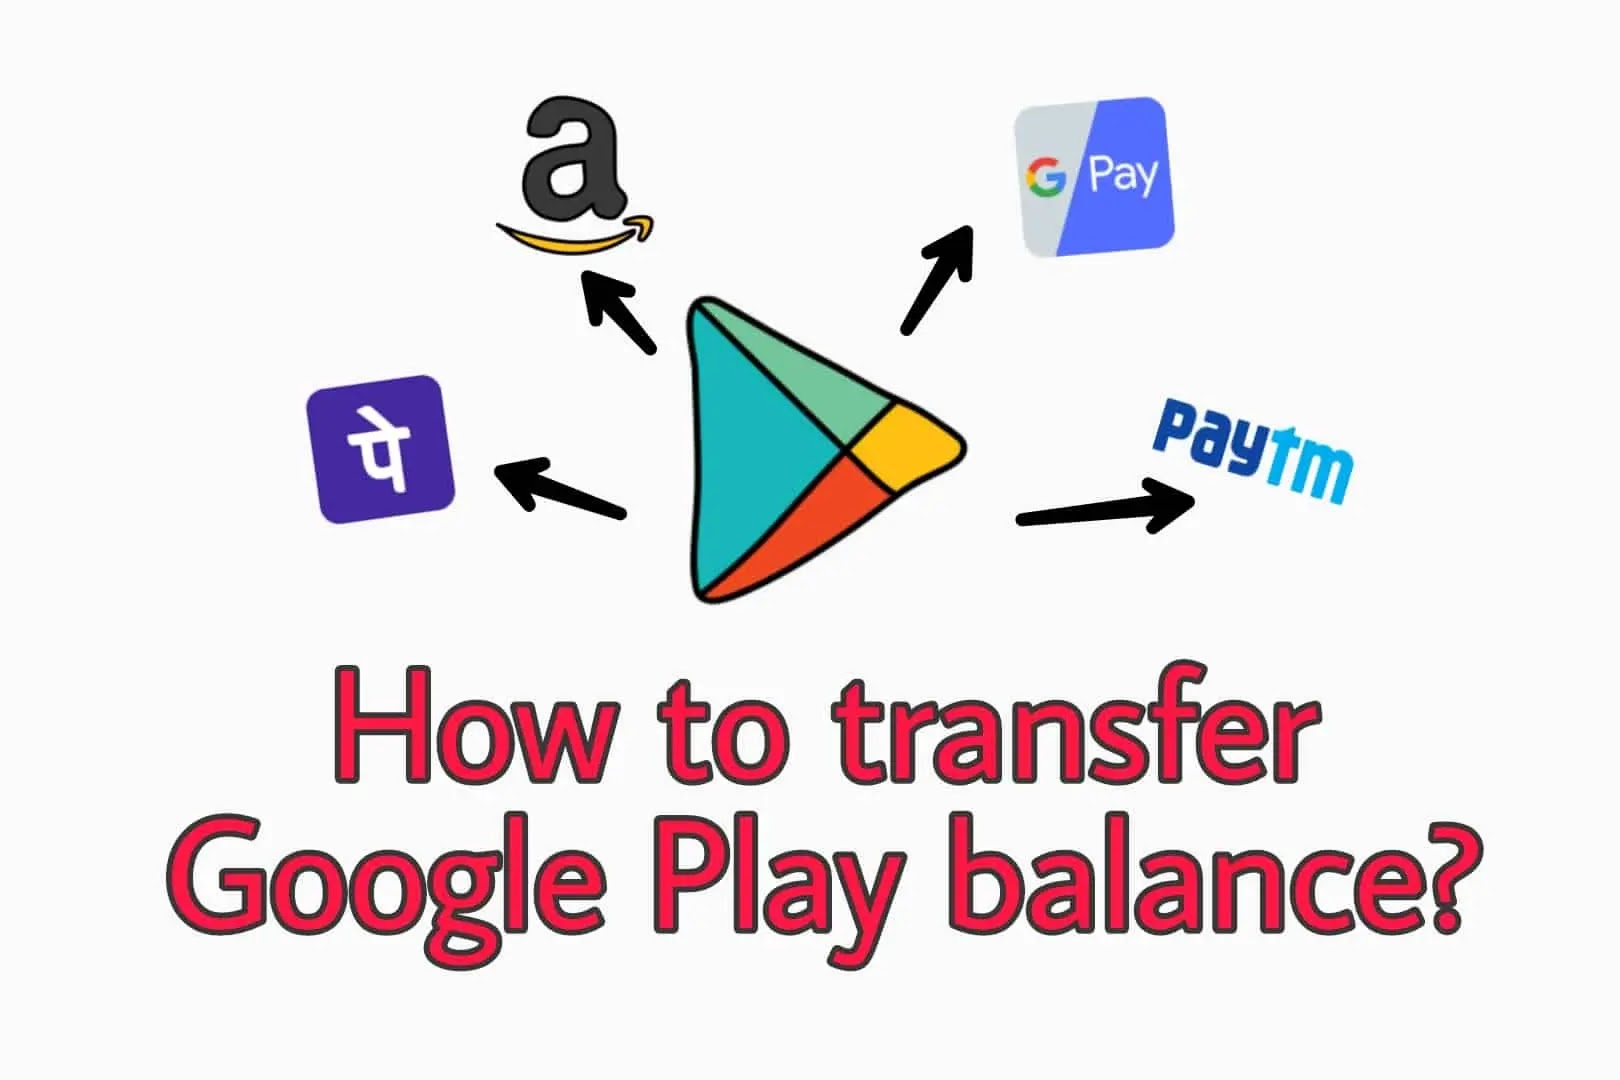 How to transfer Google Play balance to Bank account, Amazon, PayPal or Paytm